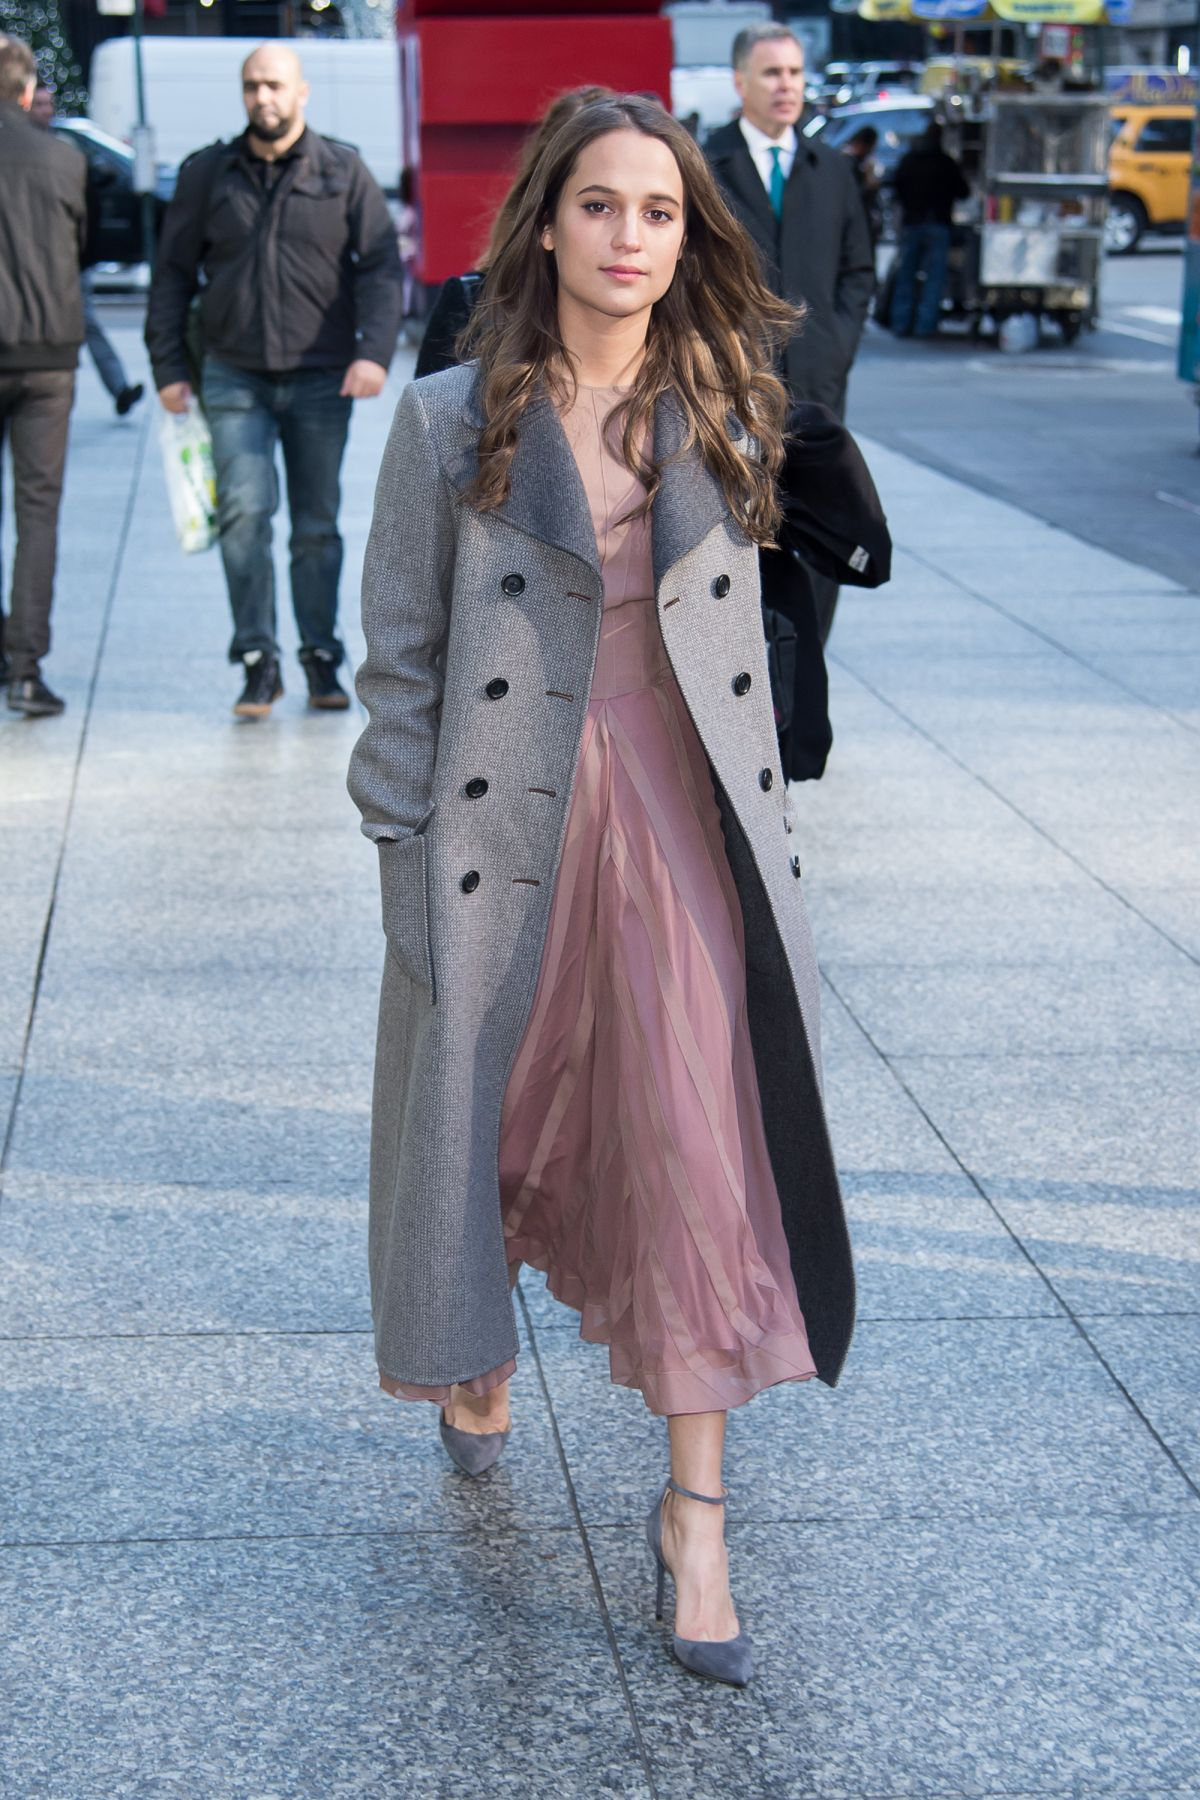 ALICIA VIKANDER Out and About in New York 12/16/2015